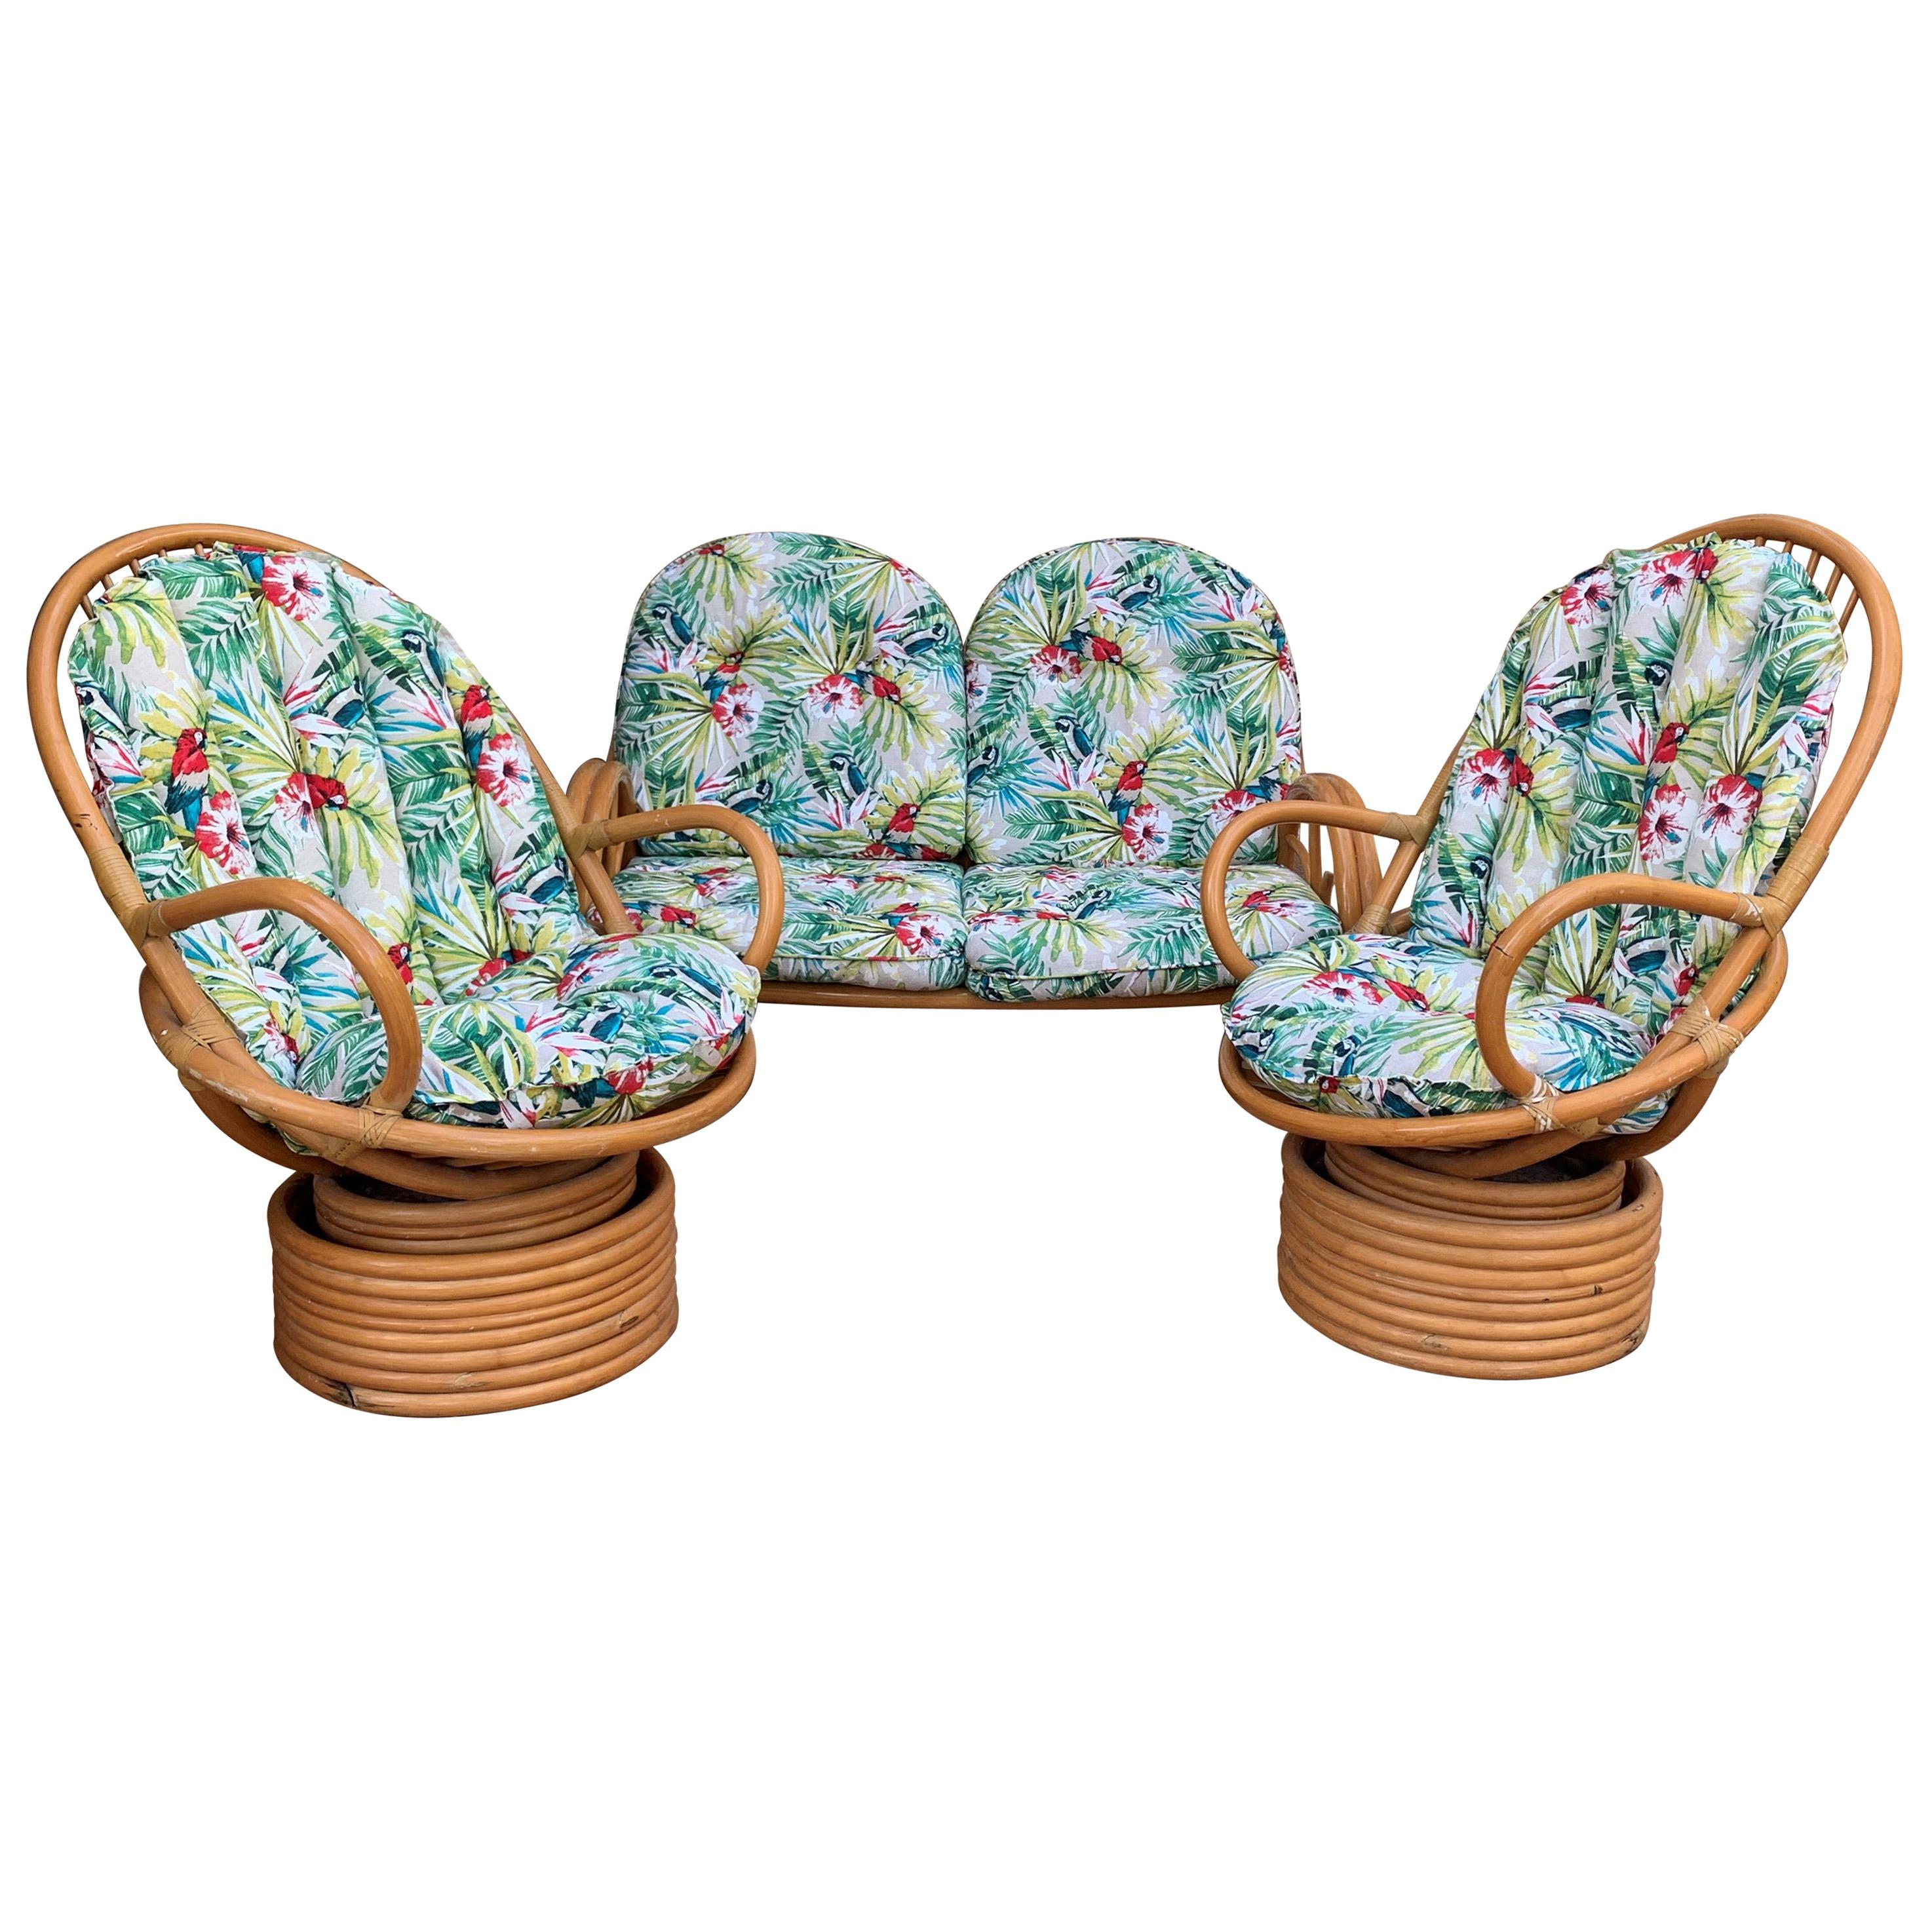 Italian Mid-Century Modern Bamboo Set of Lounge Patio with Settee and Rocking